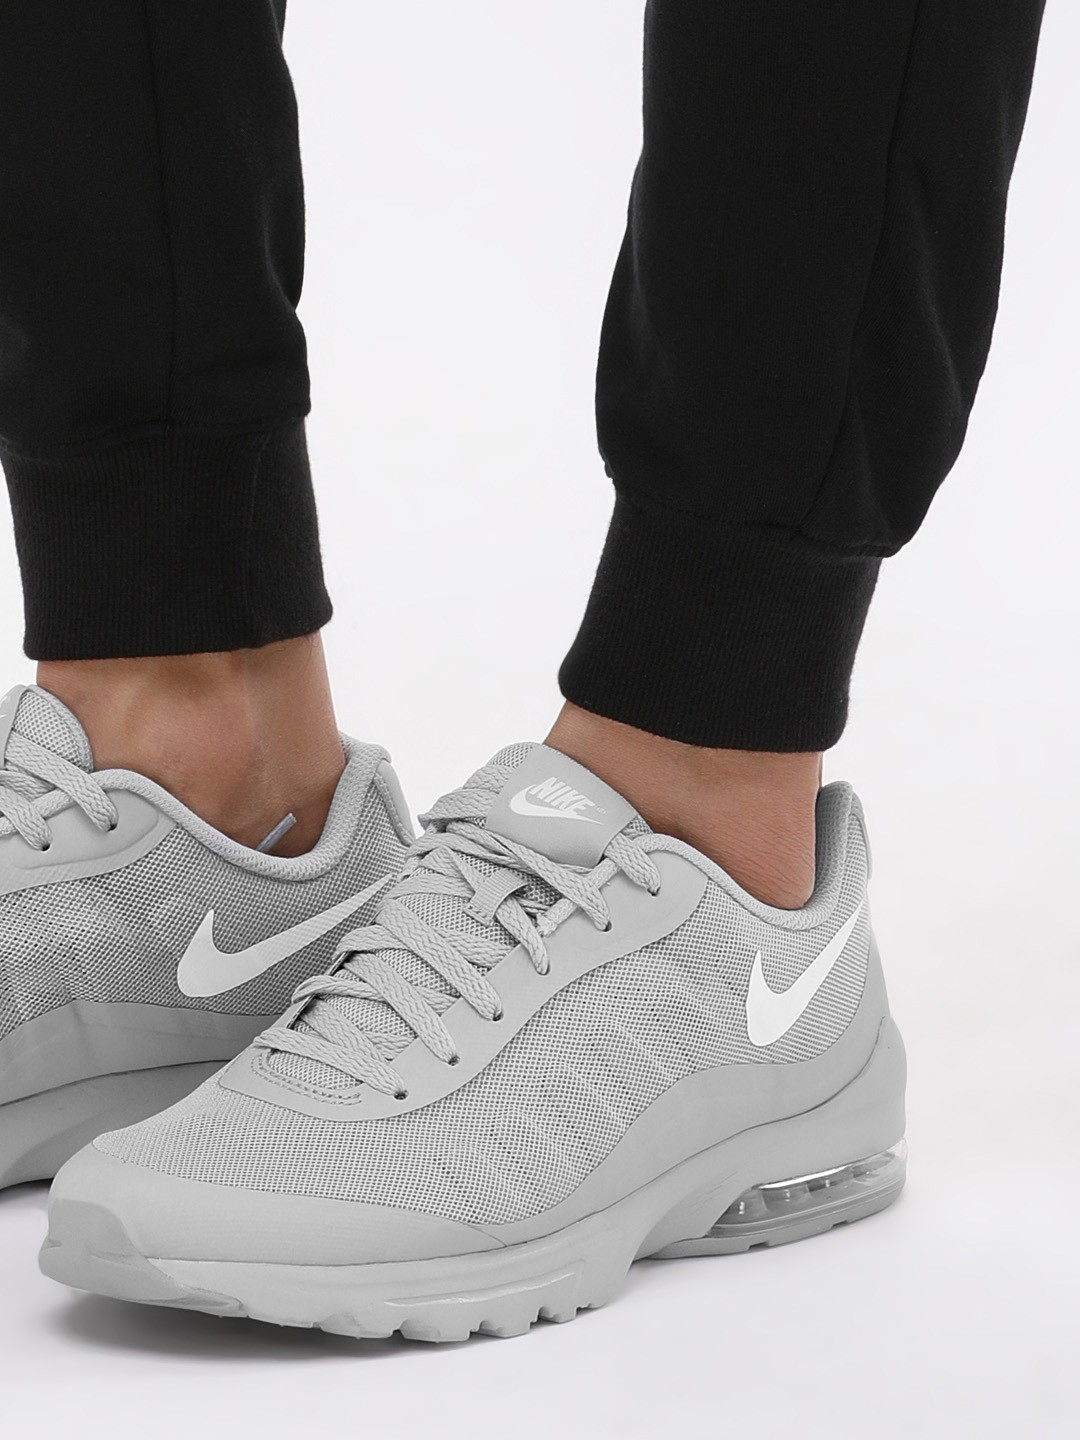 super populaire 83eba c0e5c Buy Nike Grey Air Max Invigor Shoes for Men Online in India